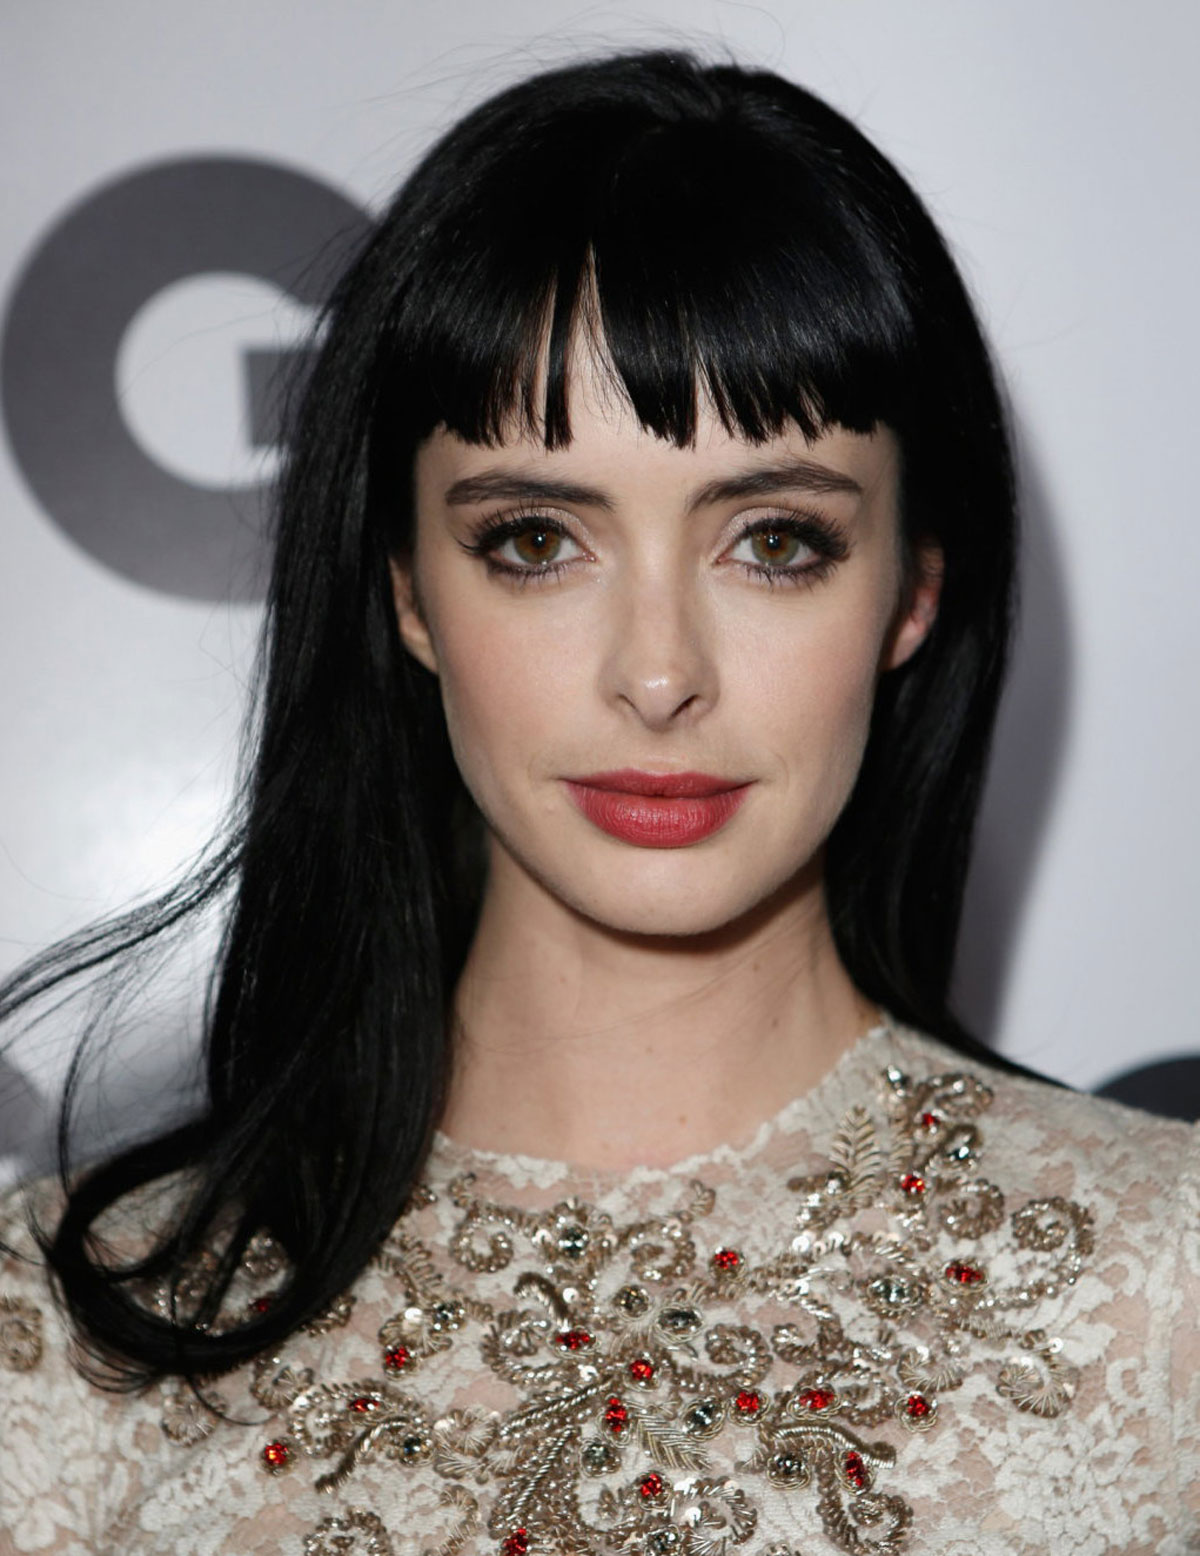 Krysten Ritter Cover: KRYSTEN RITTER At GQ Men Of The Year Party In Los Angeles